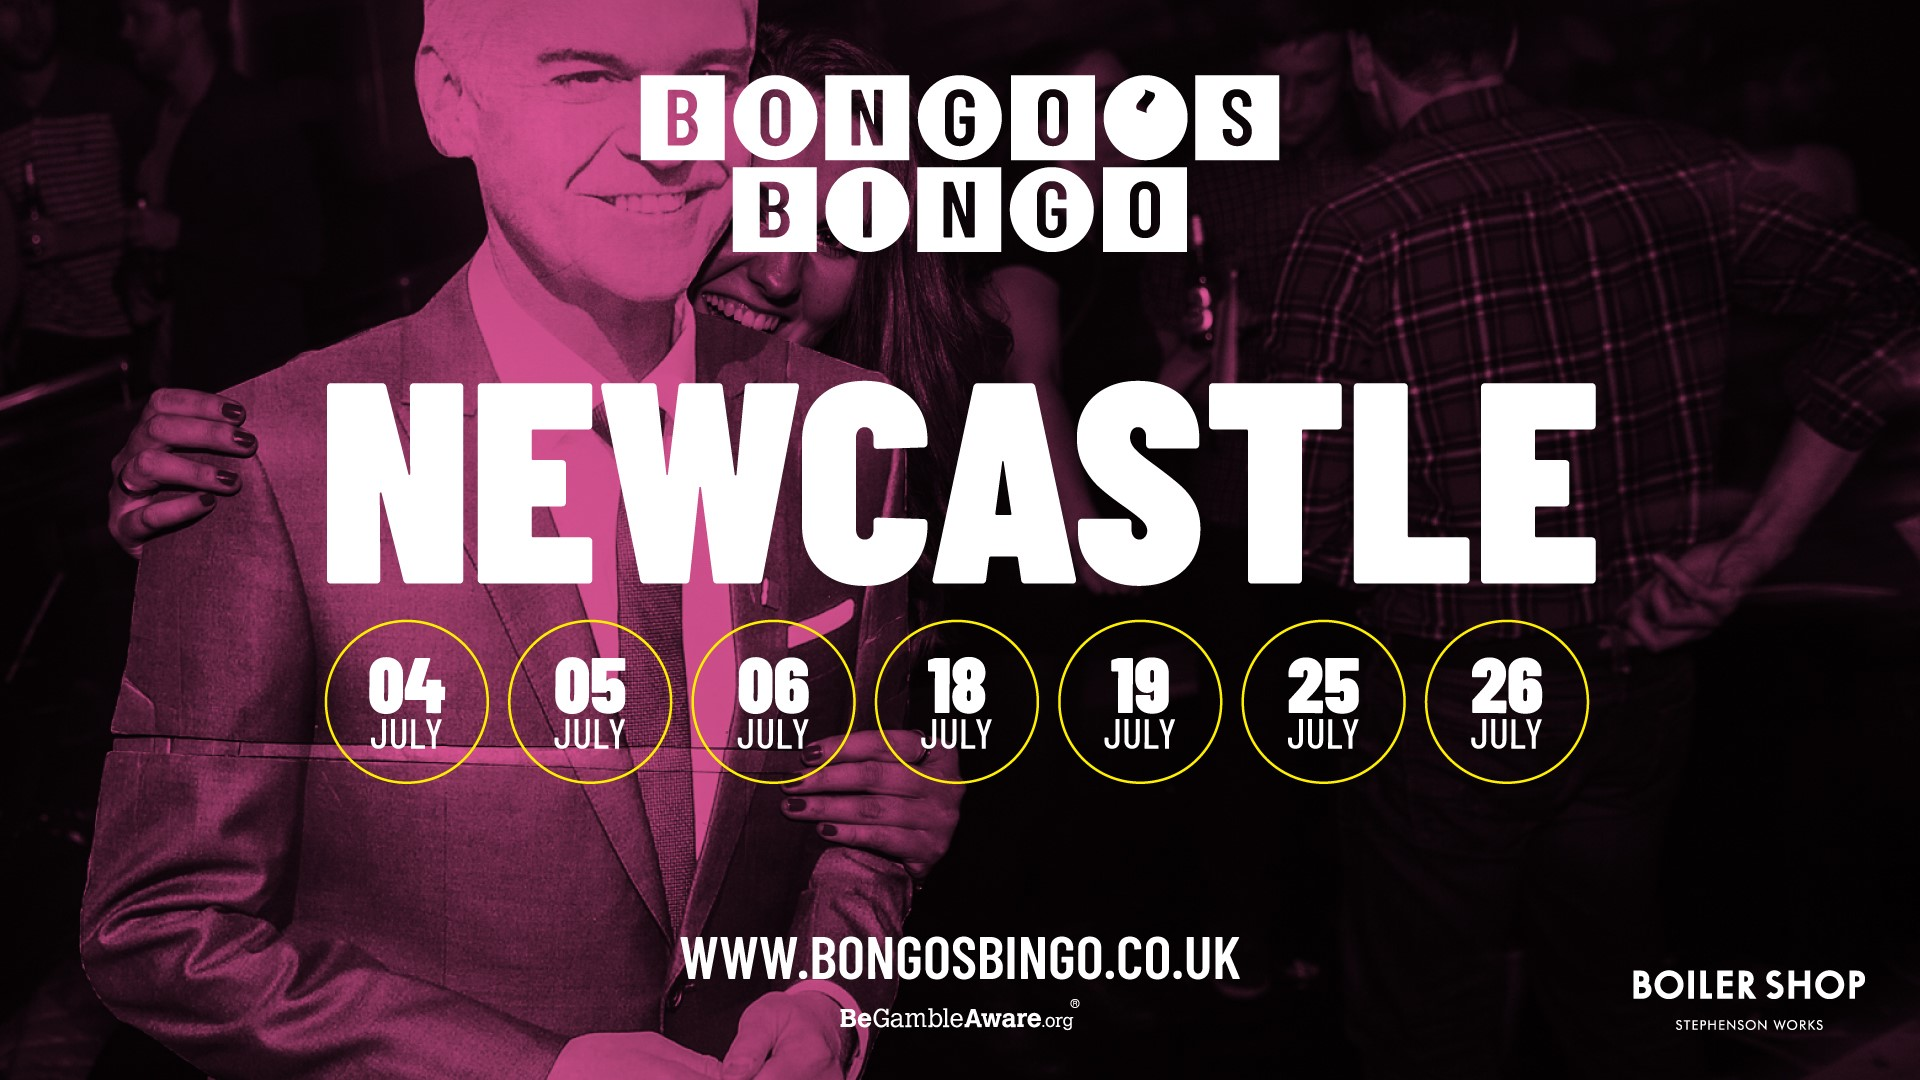 Newcastle July dates - Bongo's Bingo.jpg